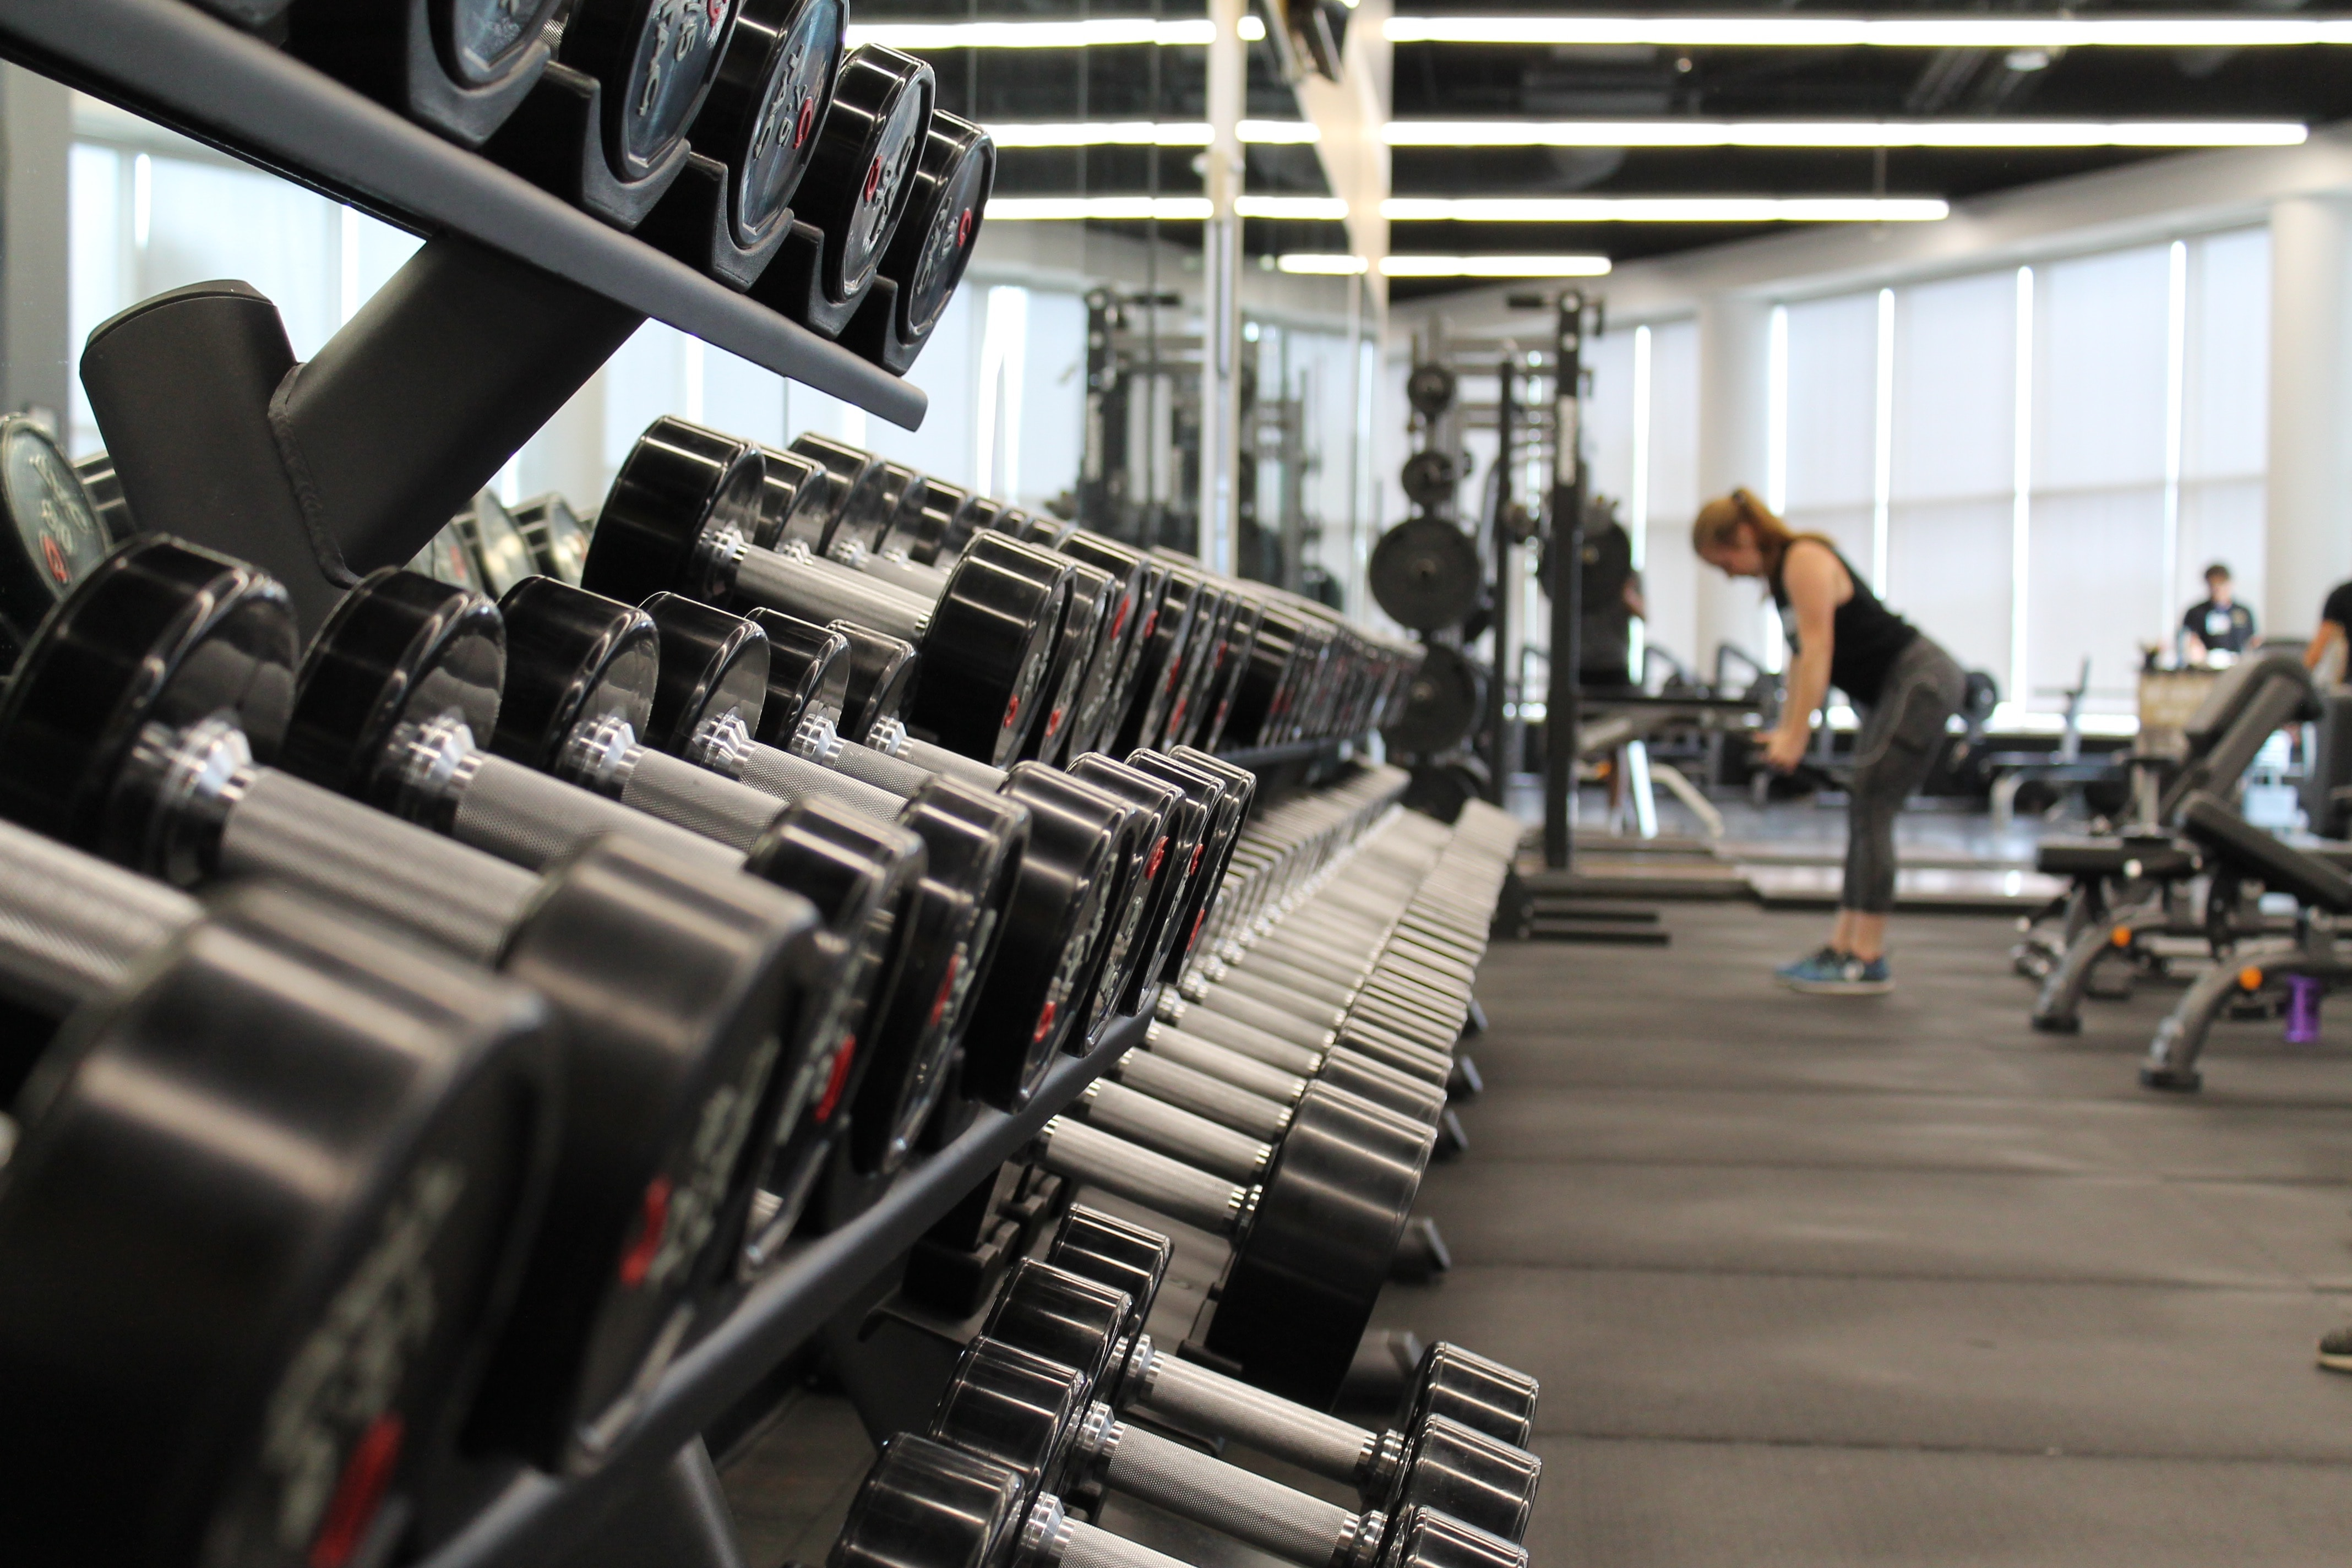 a woman lifts weights at the gym